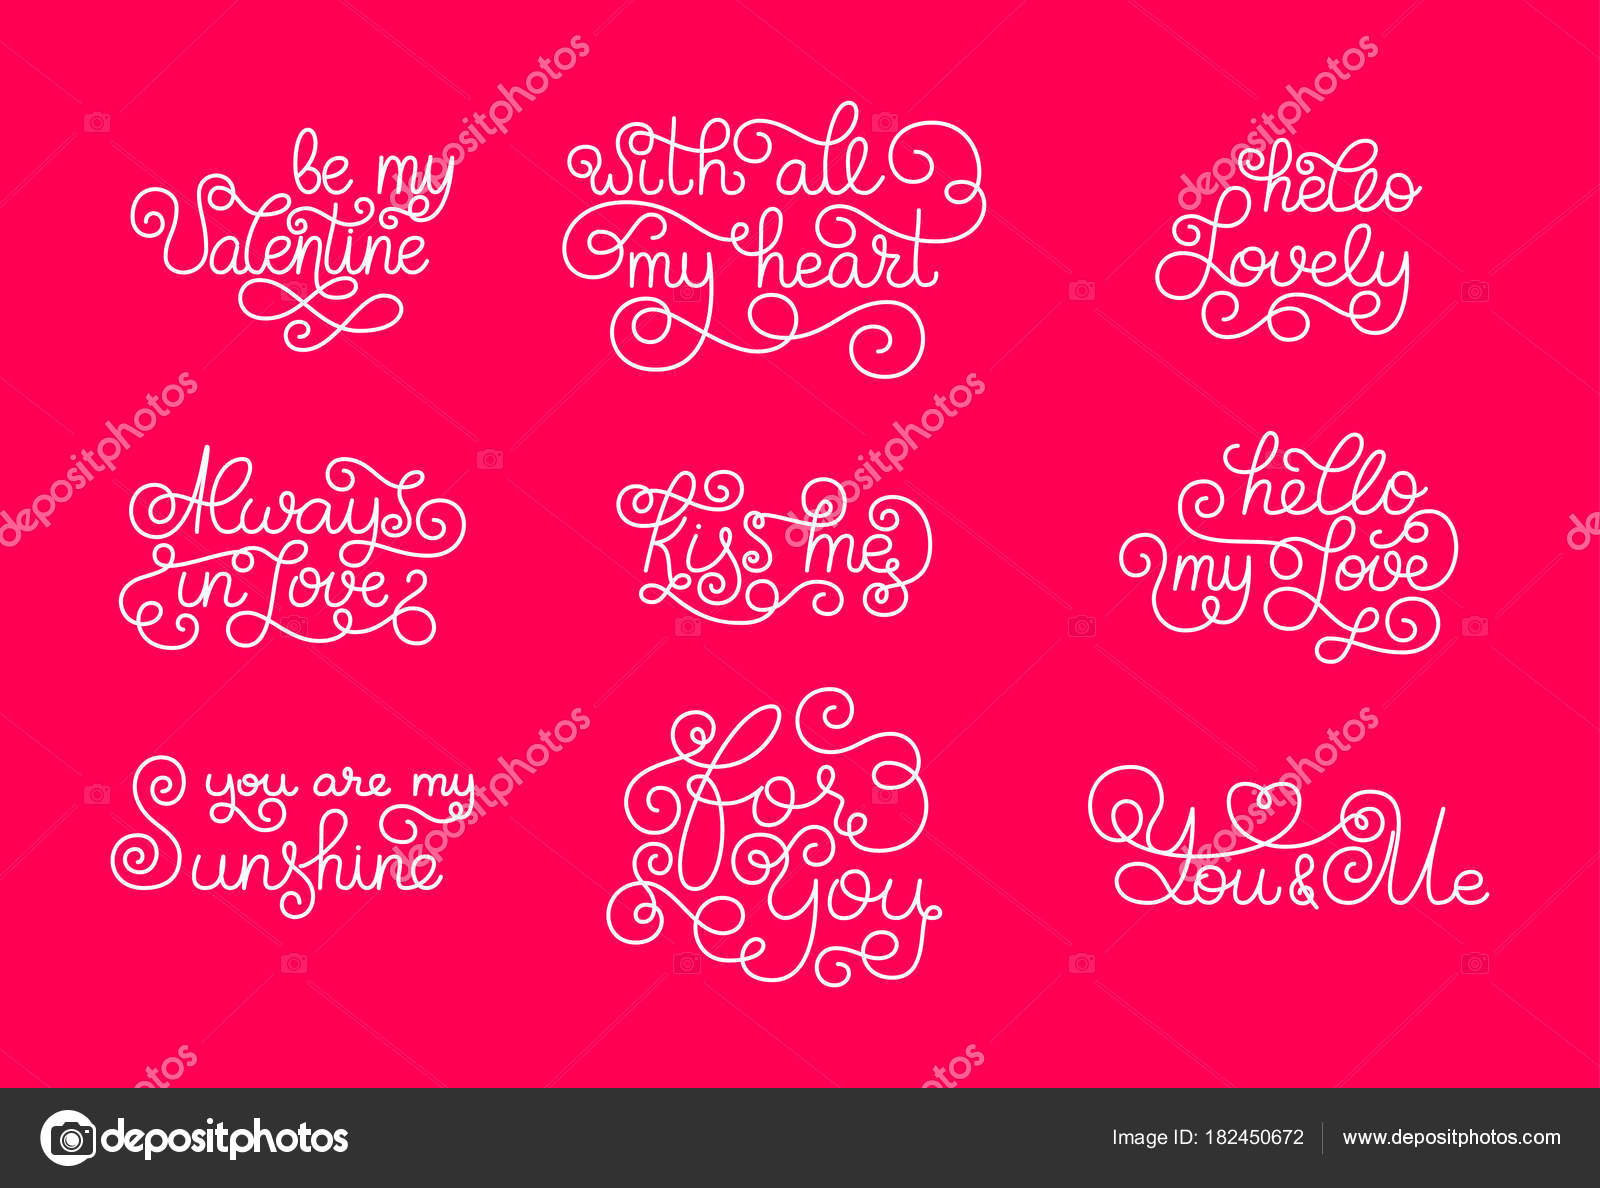 Valentines day romantic phrases template for a business card valentines day romantic phrases template for a business card banner poster notebook invitation with a modern lettering vector illustration for your colourmoves